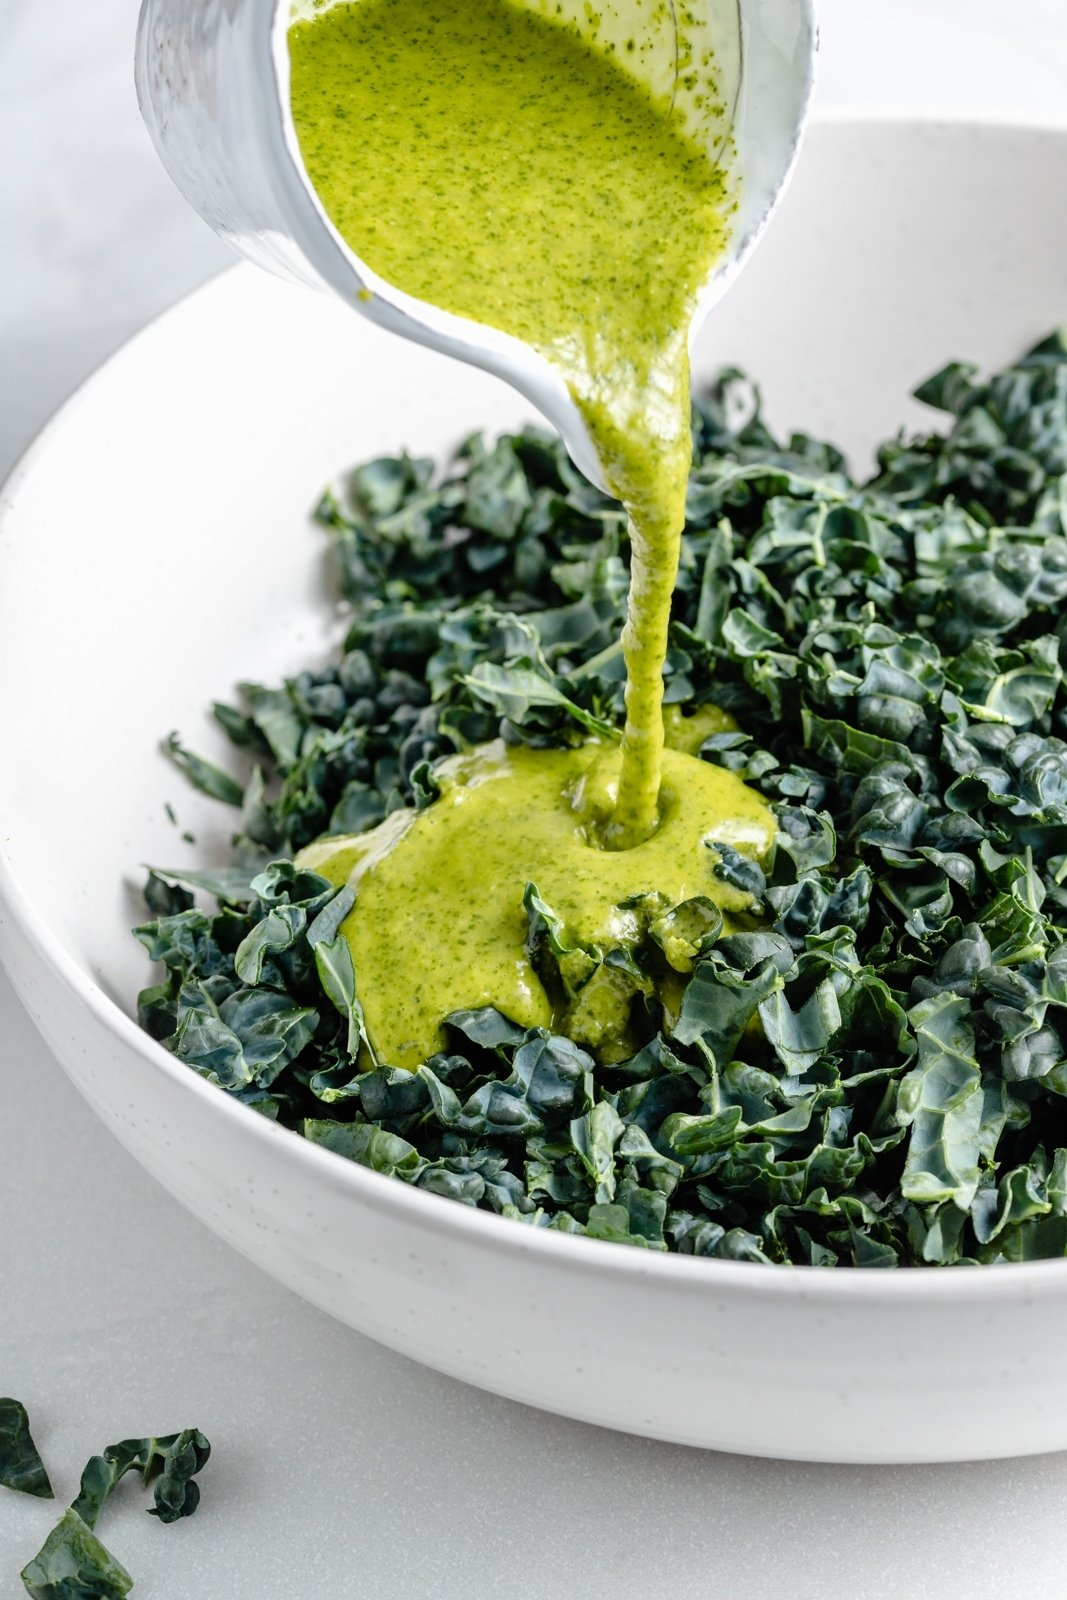 pouring cilantro lime dressing into a bowl of kale